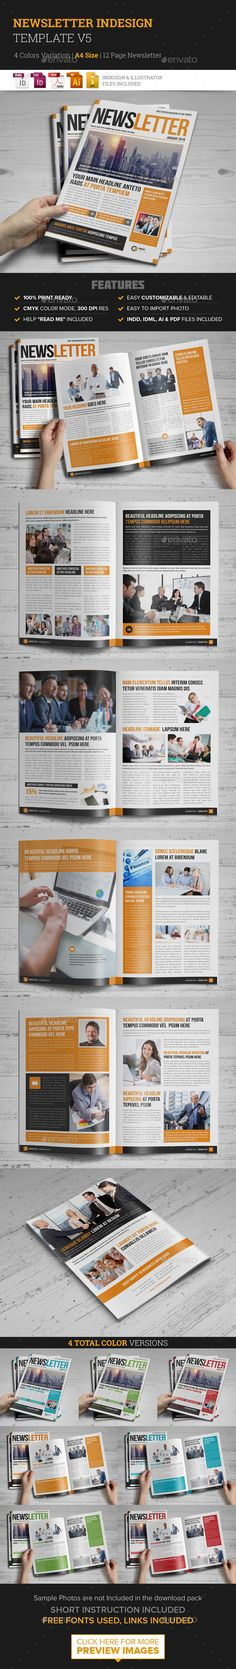 Newsletter Indesign Template v5                                                                                                                                                                                 More